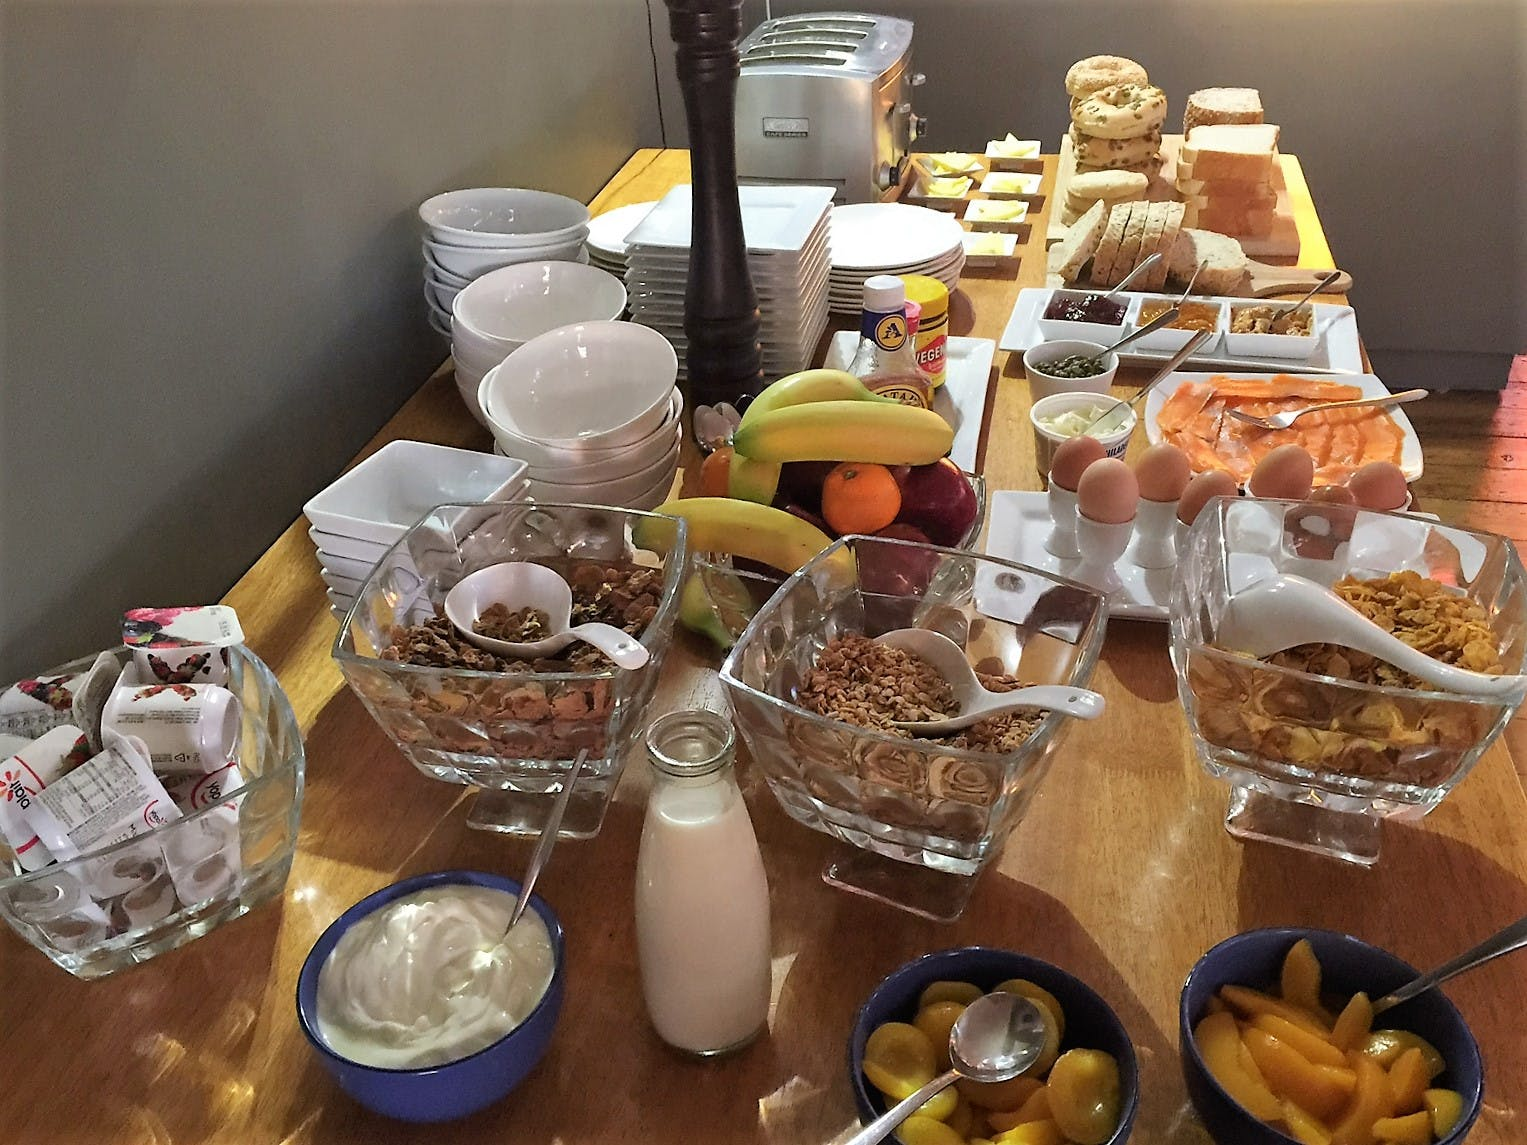 Breakfast spread - marlborough salmon, house-made bread, bagels,